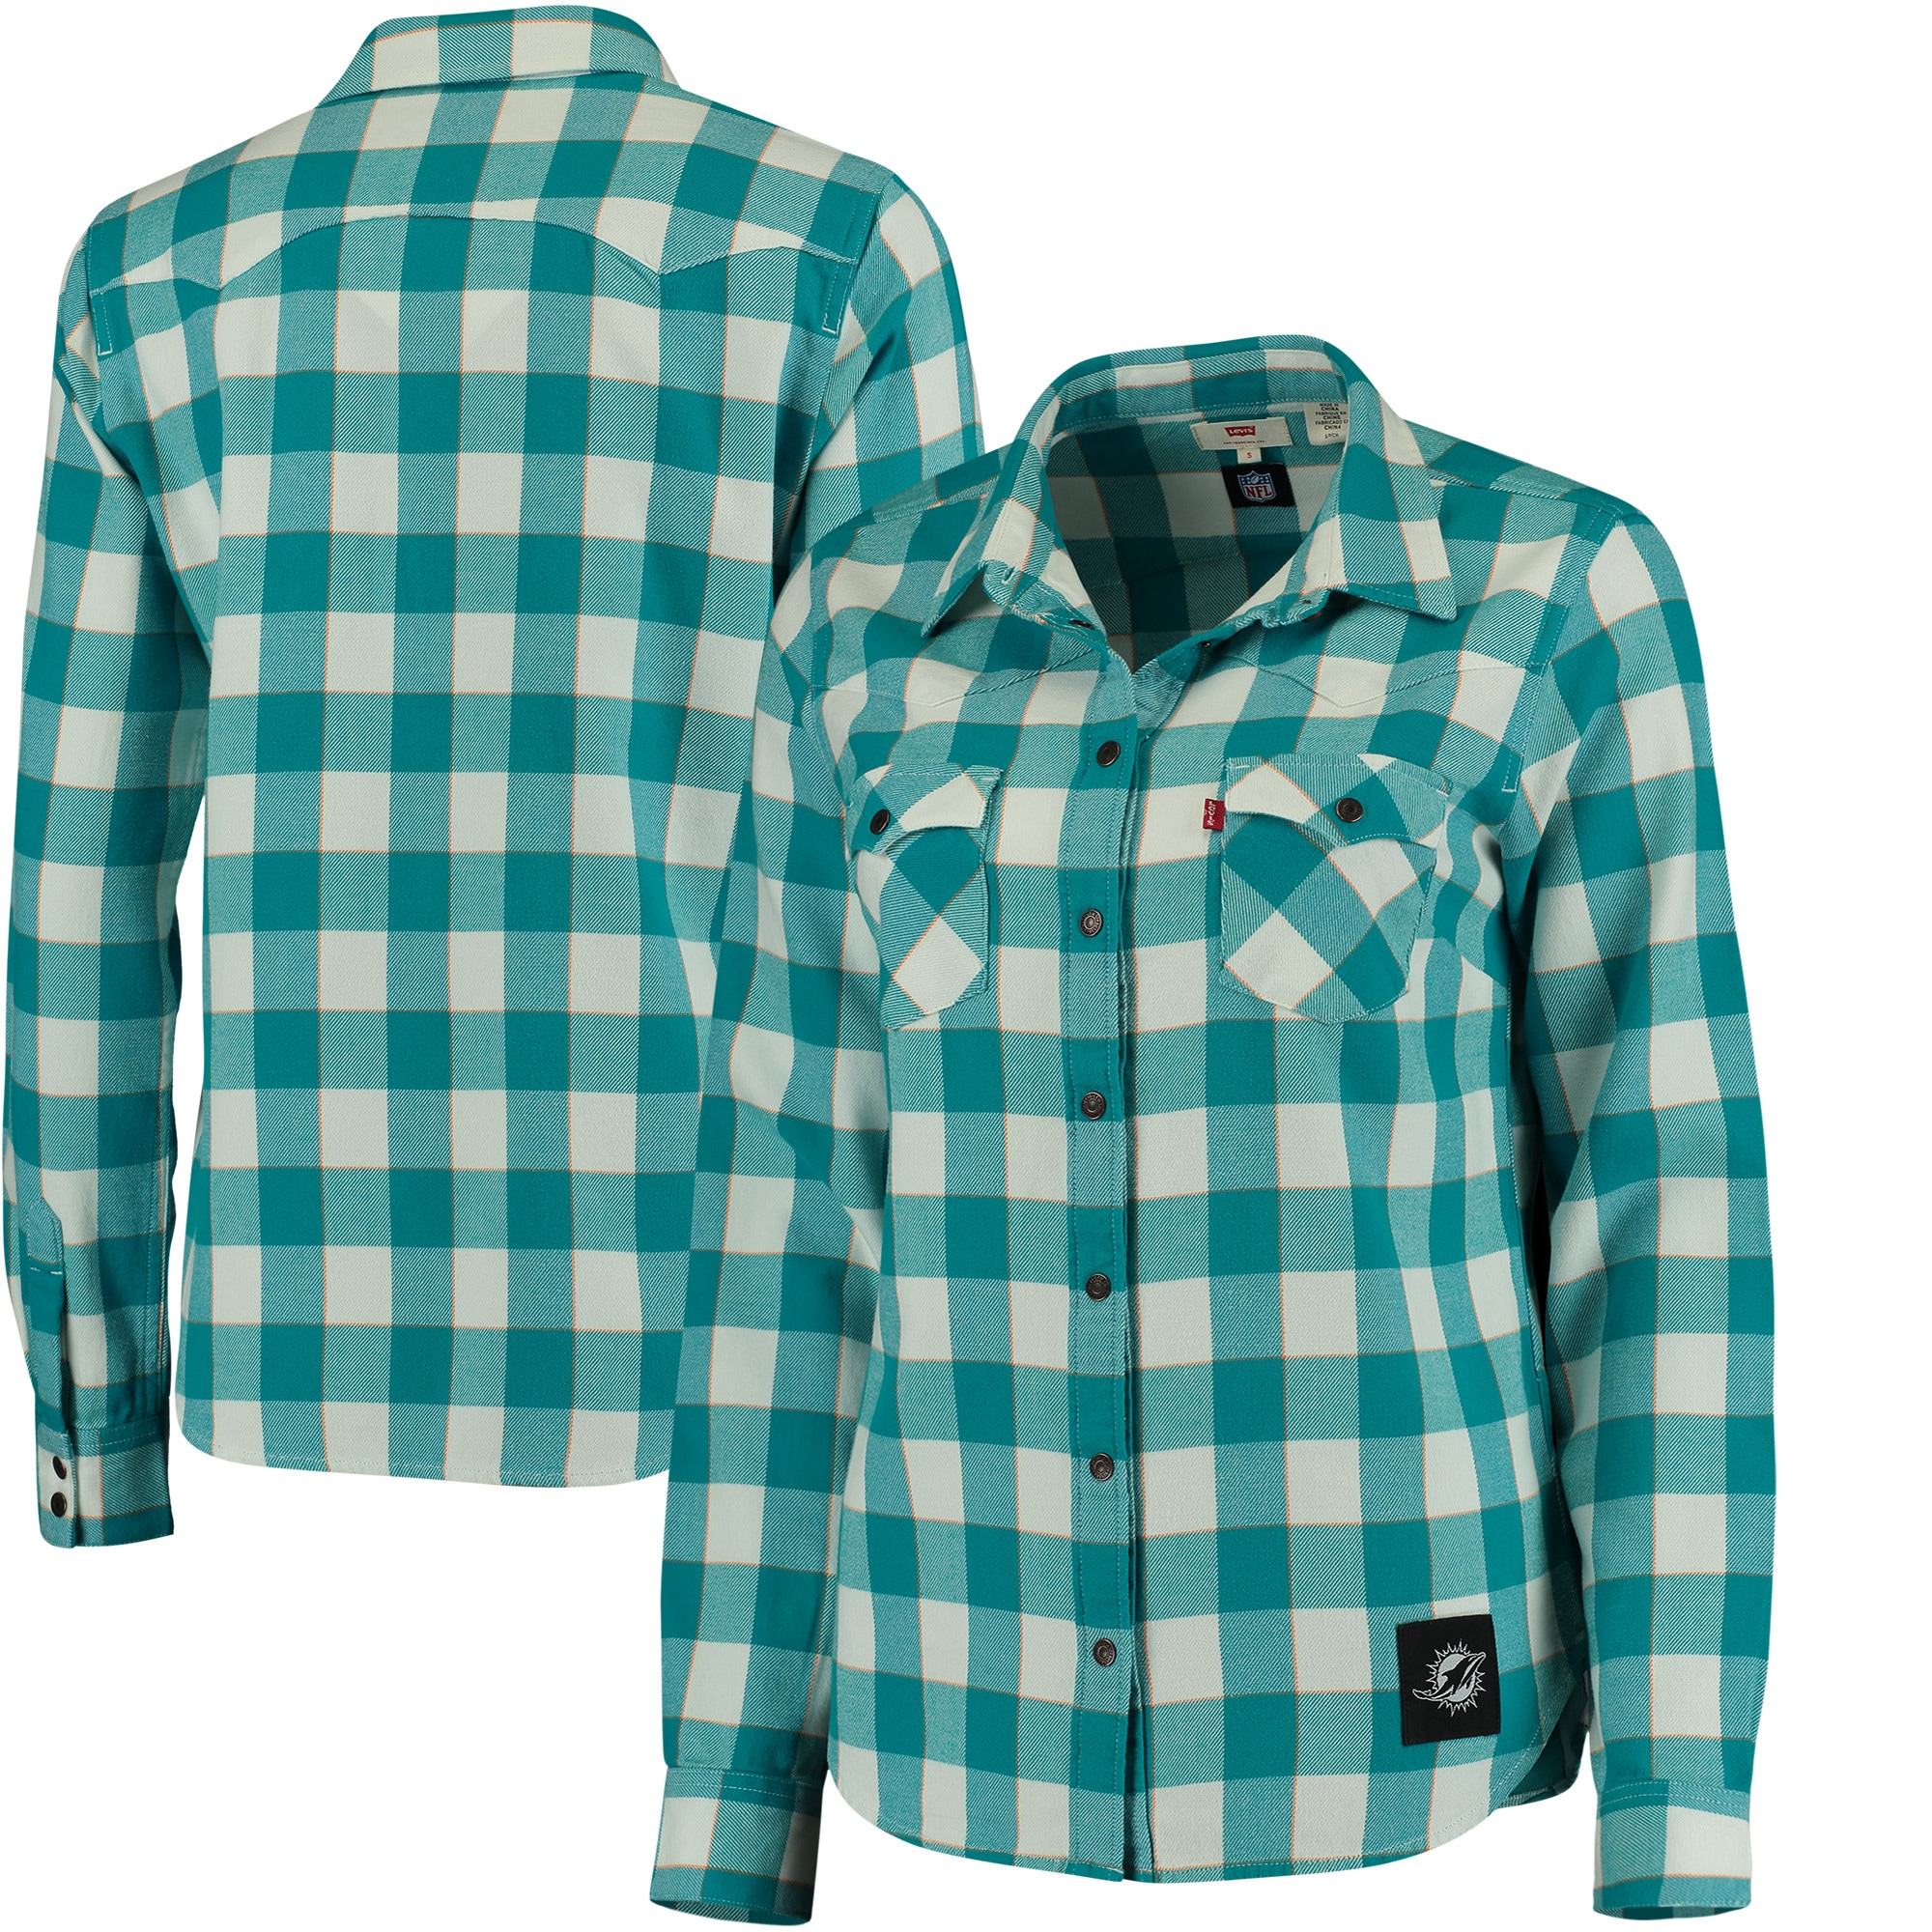 Miami Dolphins Levi's Women's Barstow Western Button-Up Long Sleeve Shirt - Aqua